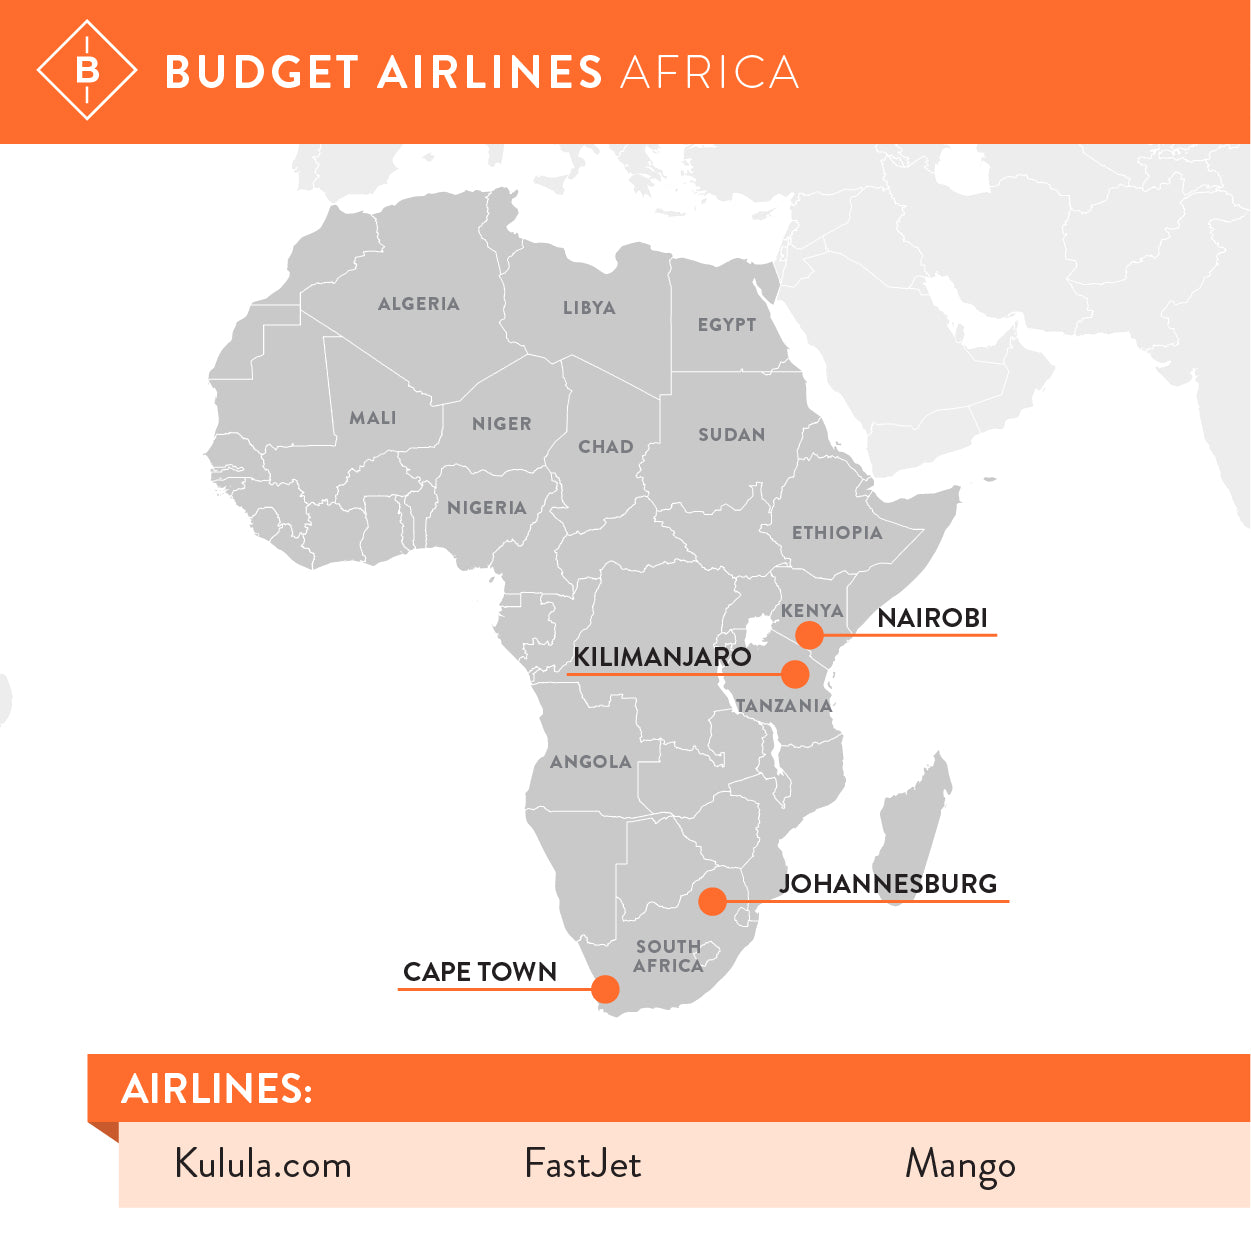 Low cost airline carriers in Africa.